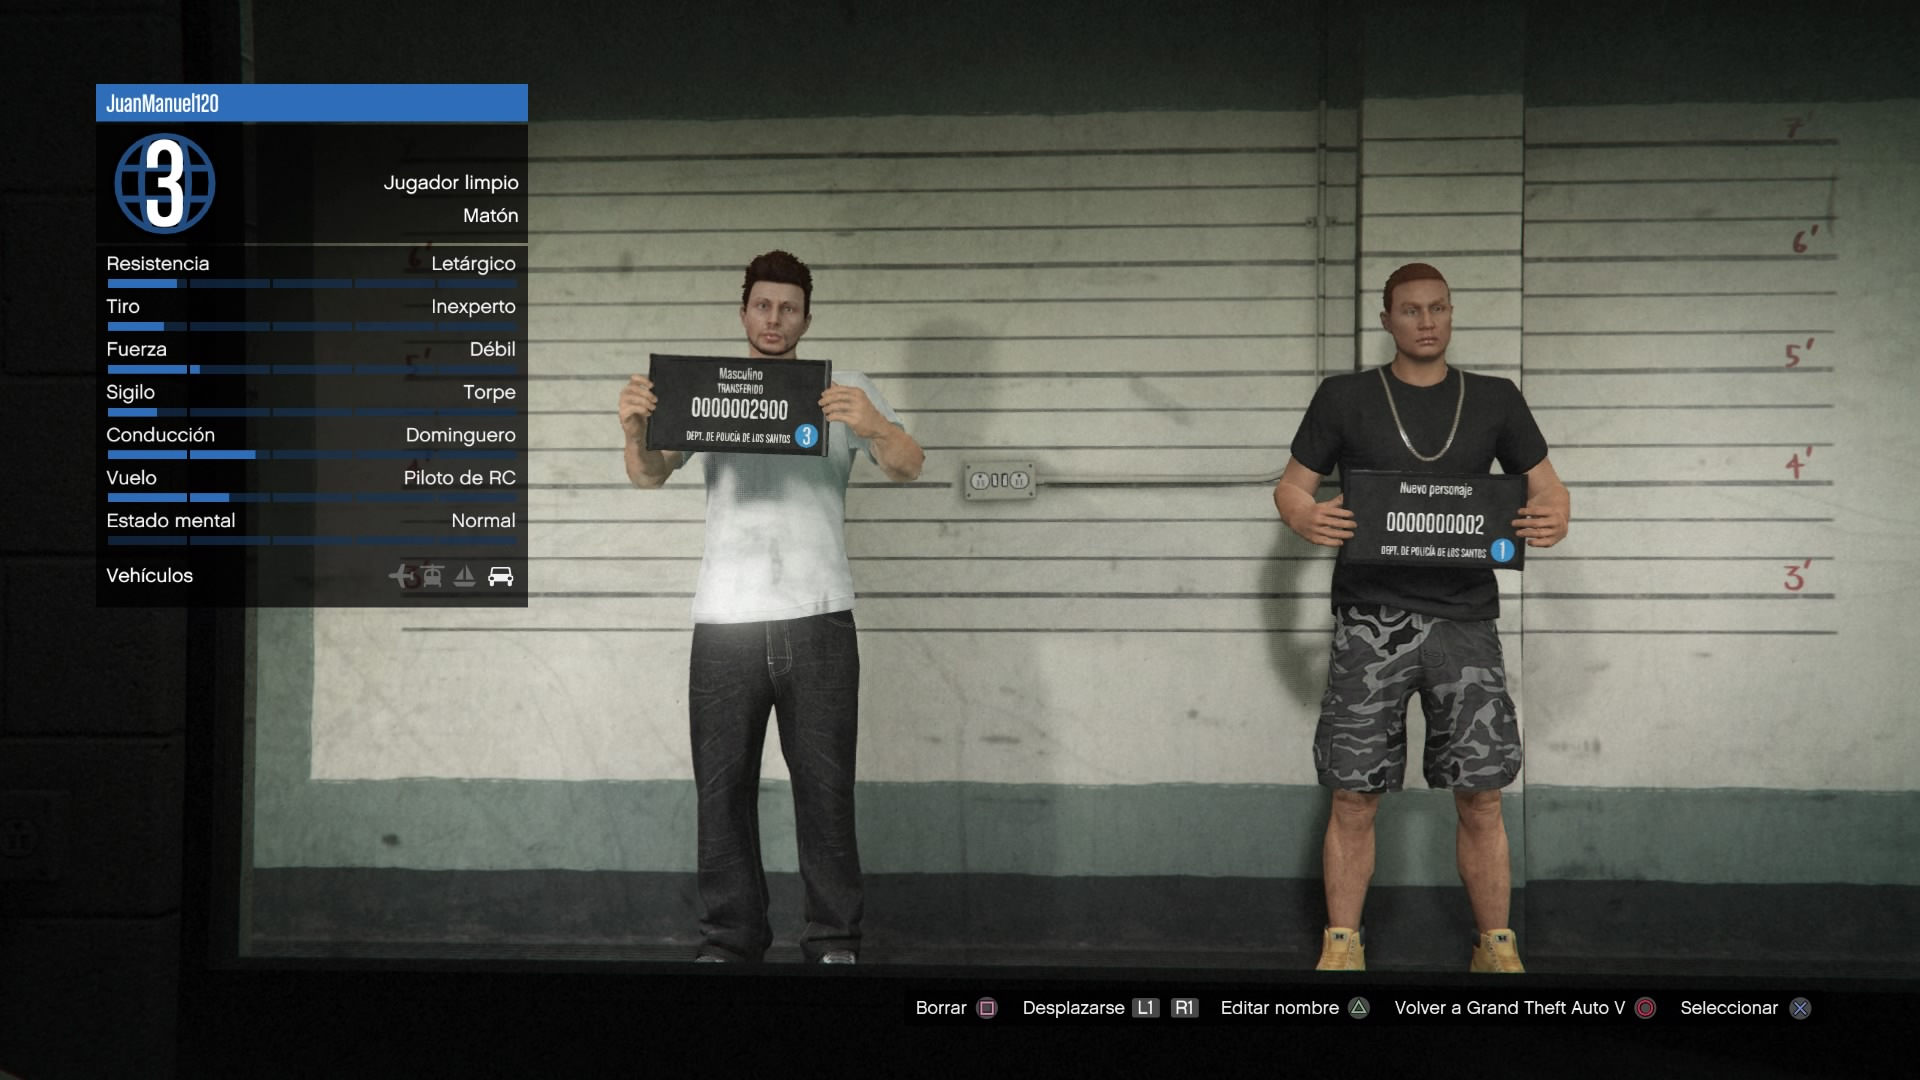 Personajes de gta online gta growth for Cuarto personaje gta 5